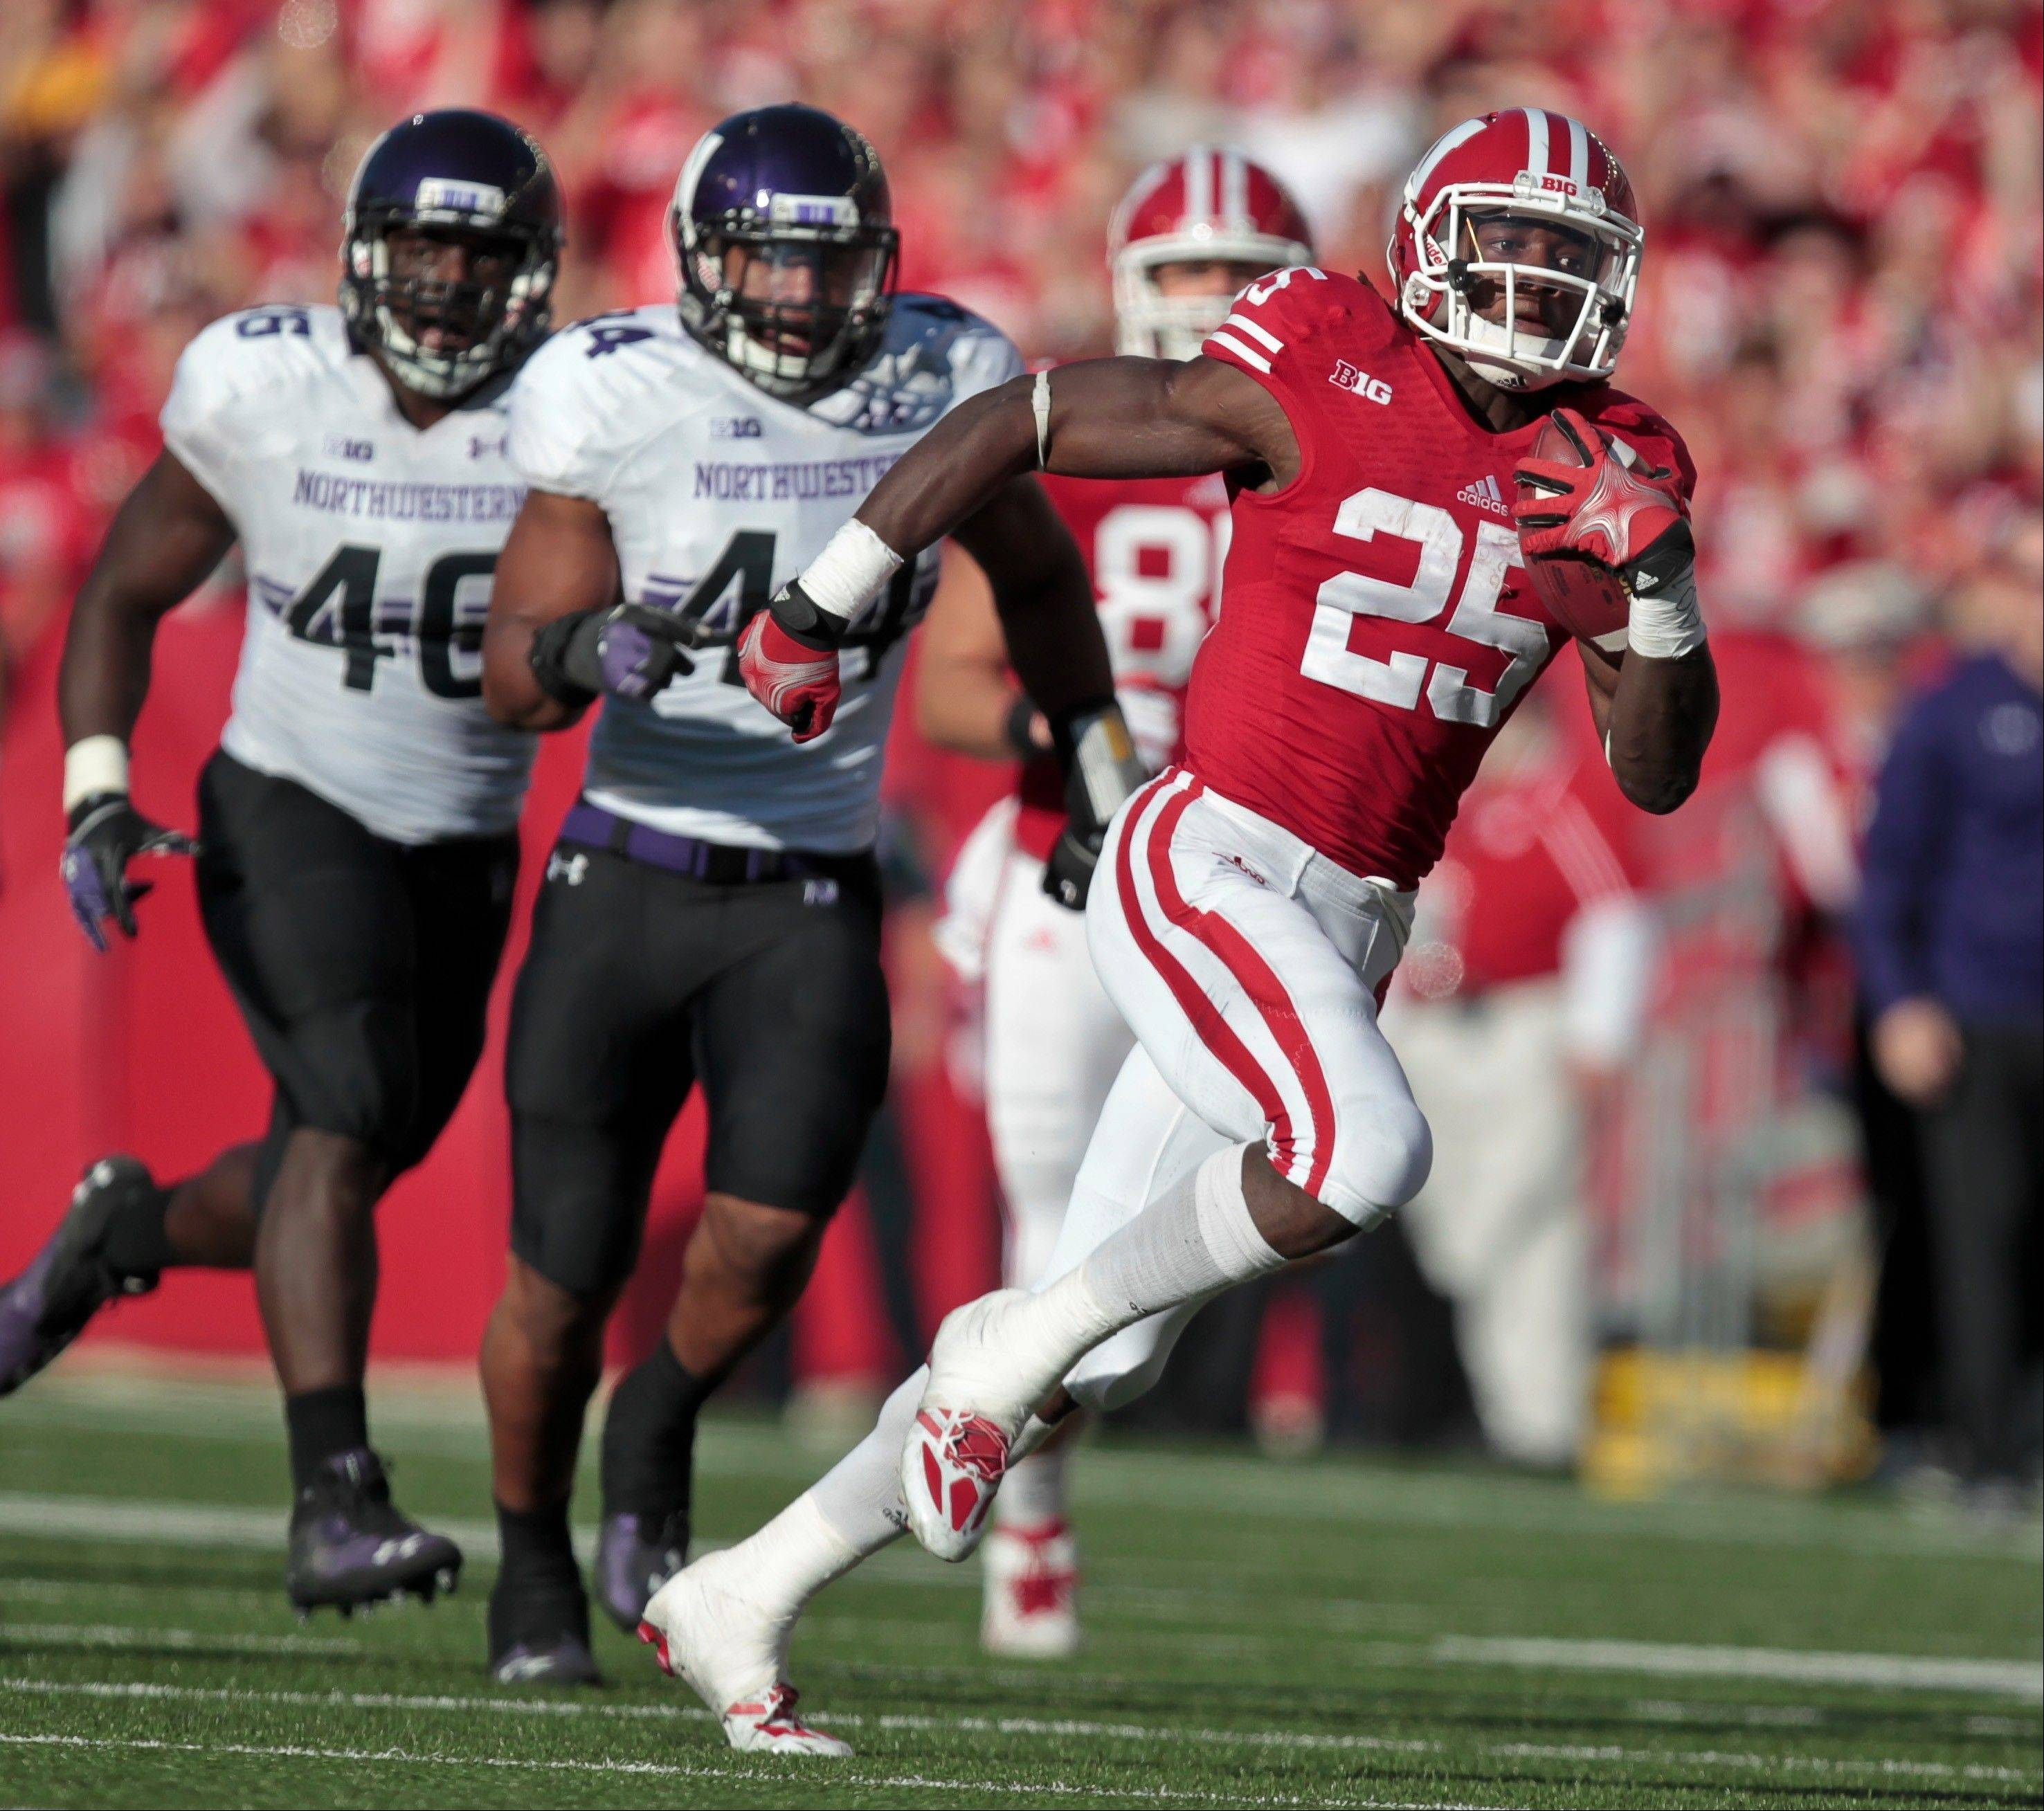 Wisconsin running back Melvin Gordon goes 71 yards for the touchdown Saturday as Northwestern's Collin Ellis and Chi Chi Ariguzo watch.